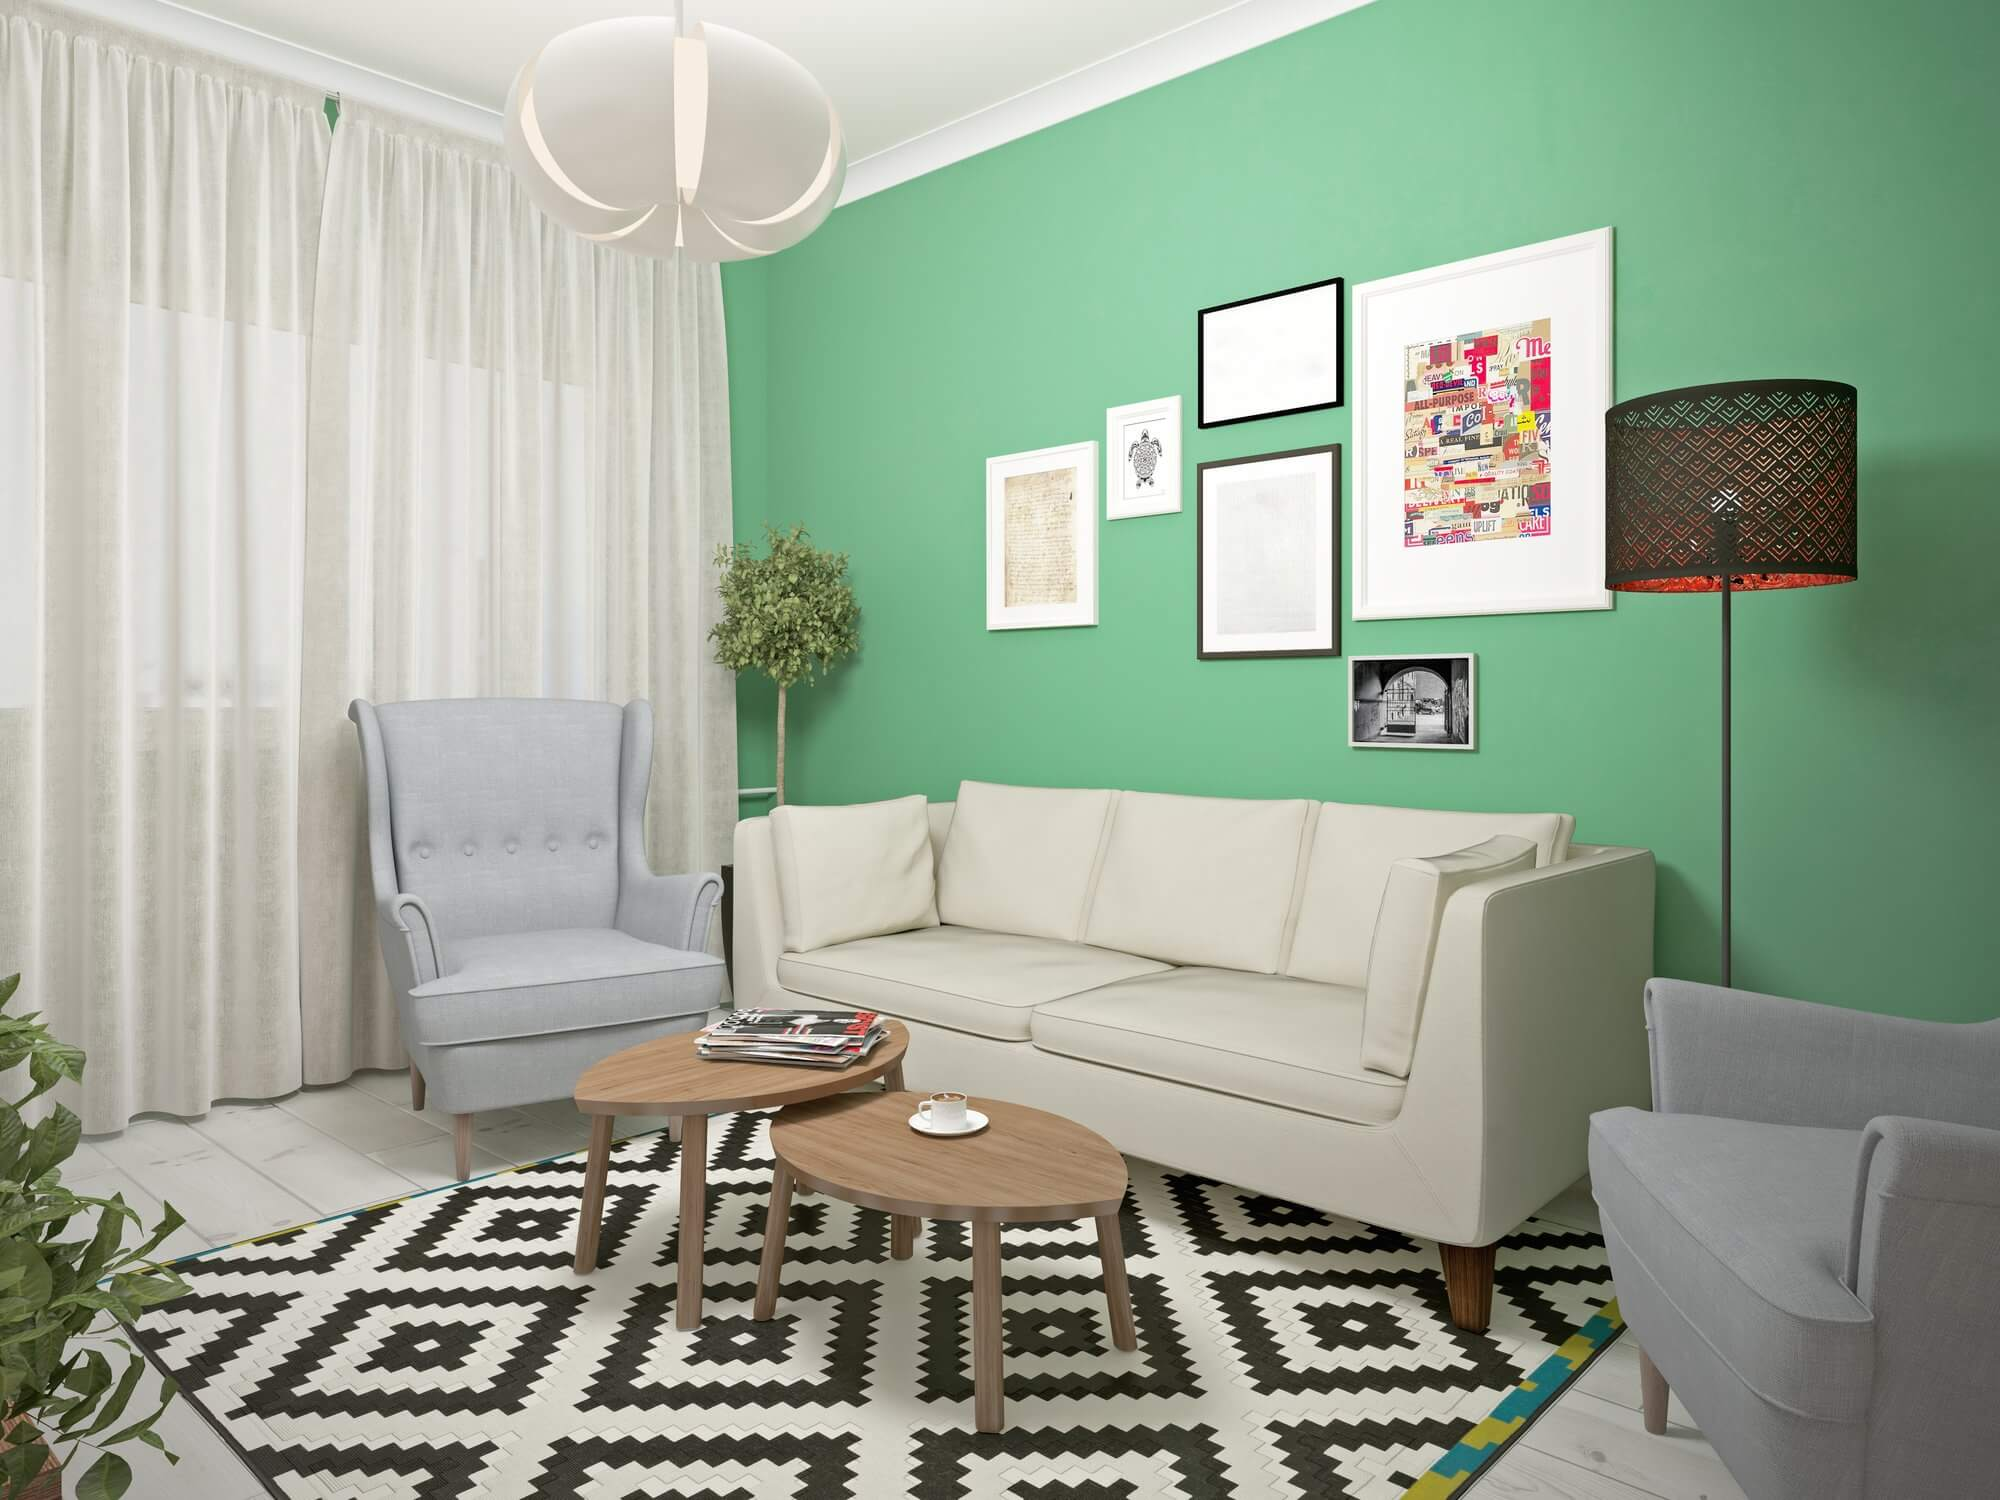 Pictures on Green Wall - Small Living Room Decor